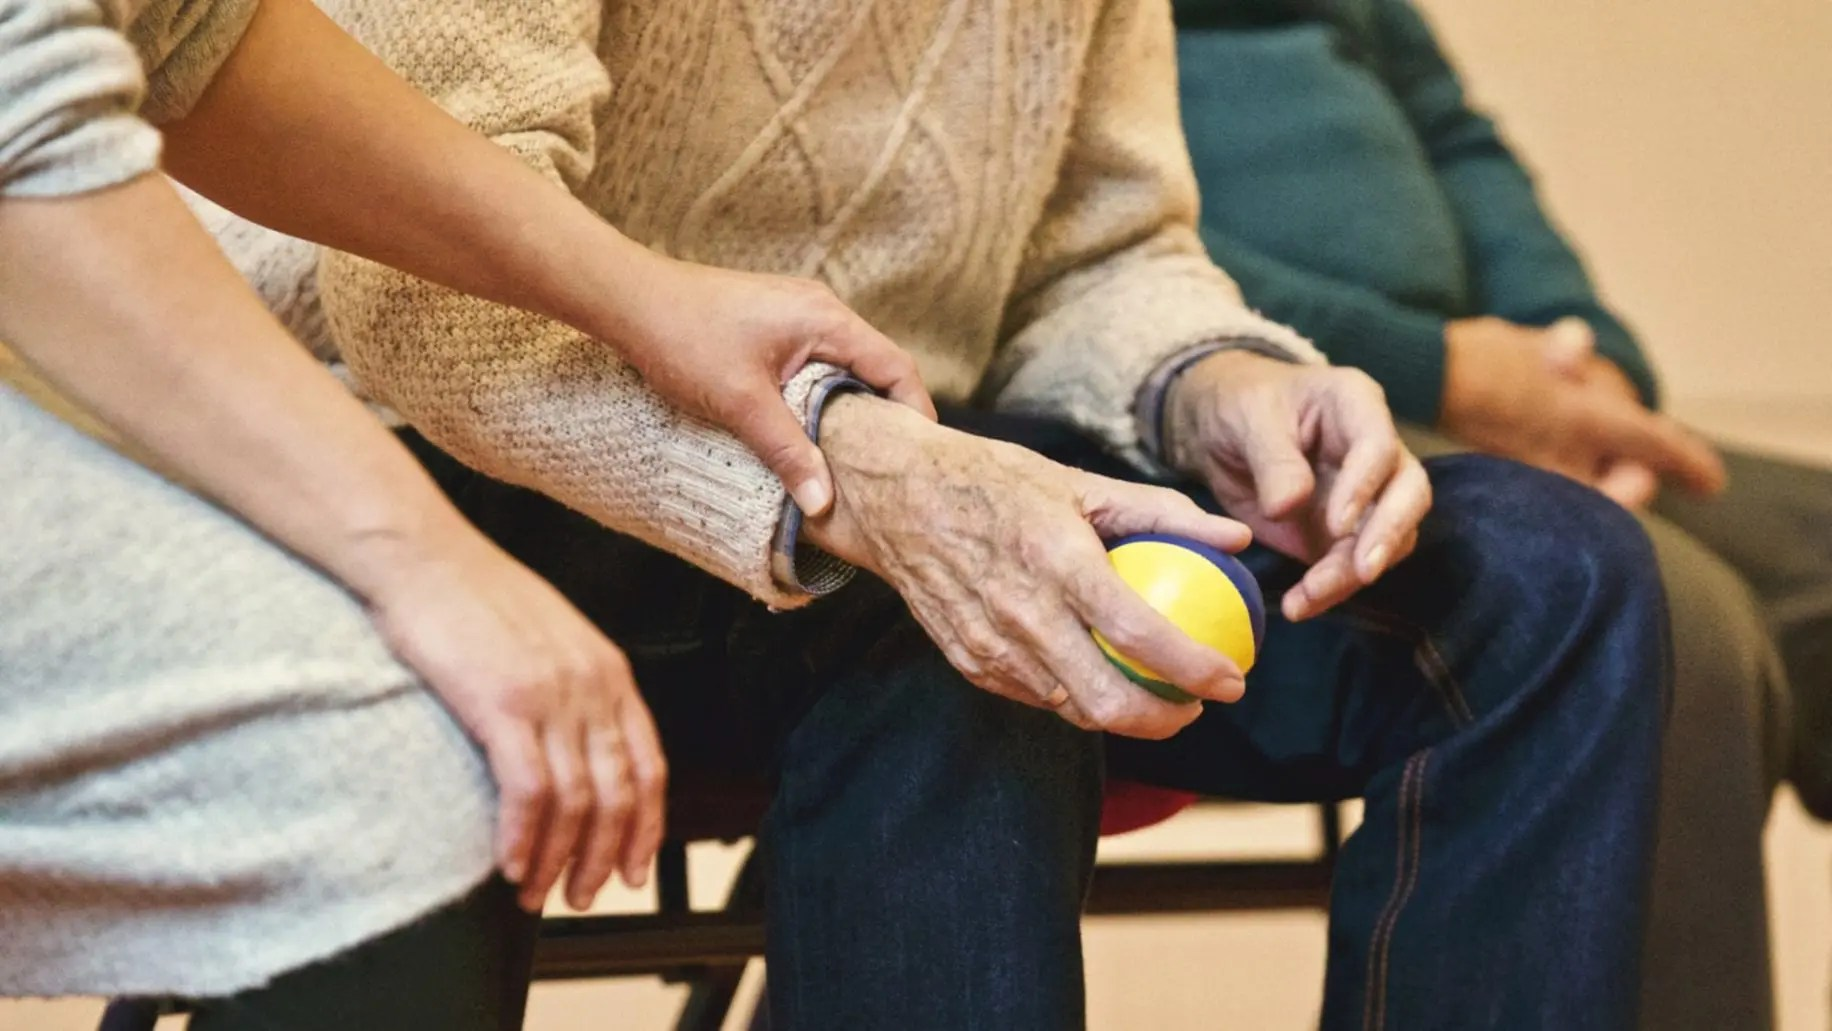 Dilemmas and Solutions for Americans Raising Children While Caring for Elderly Family Members